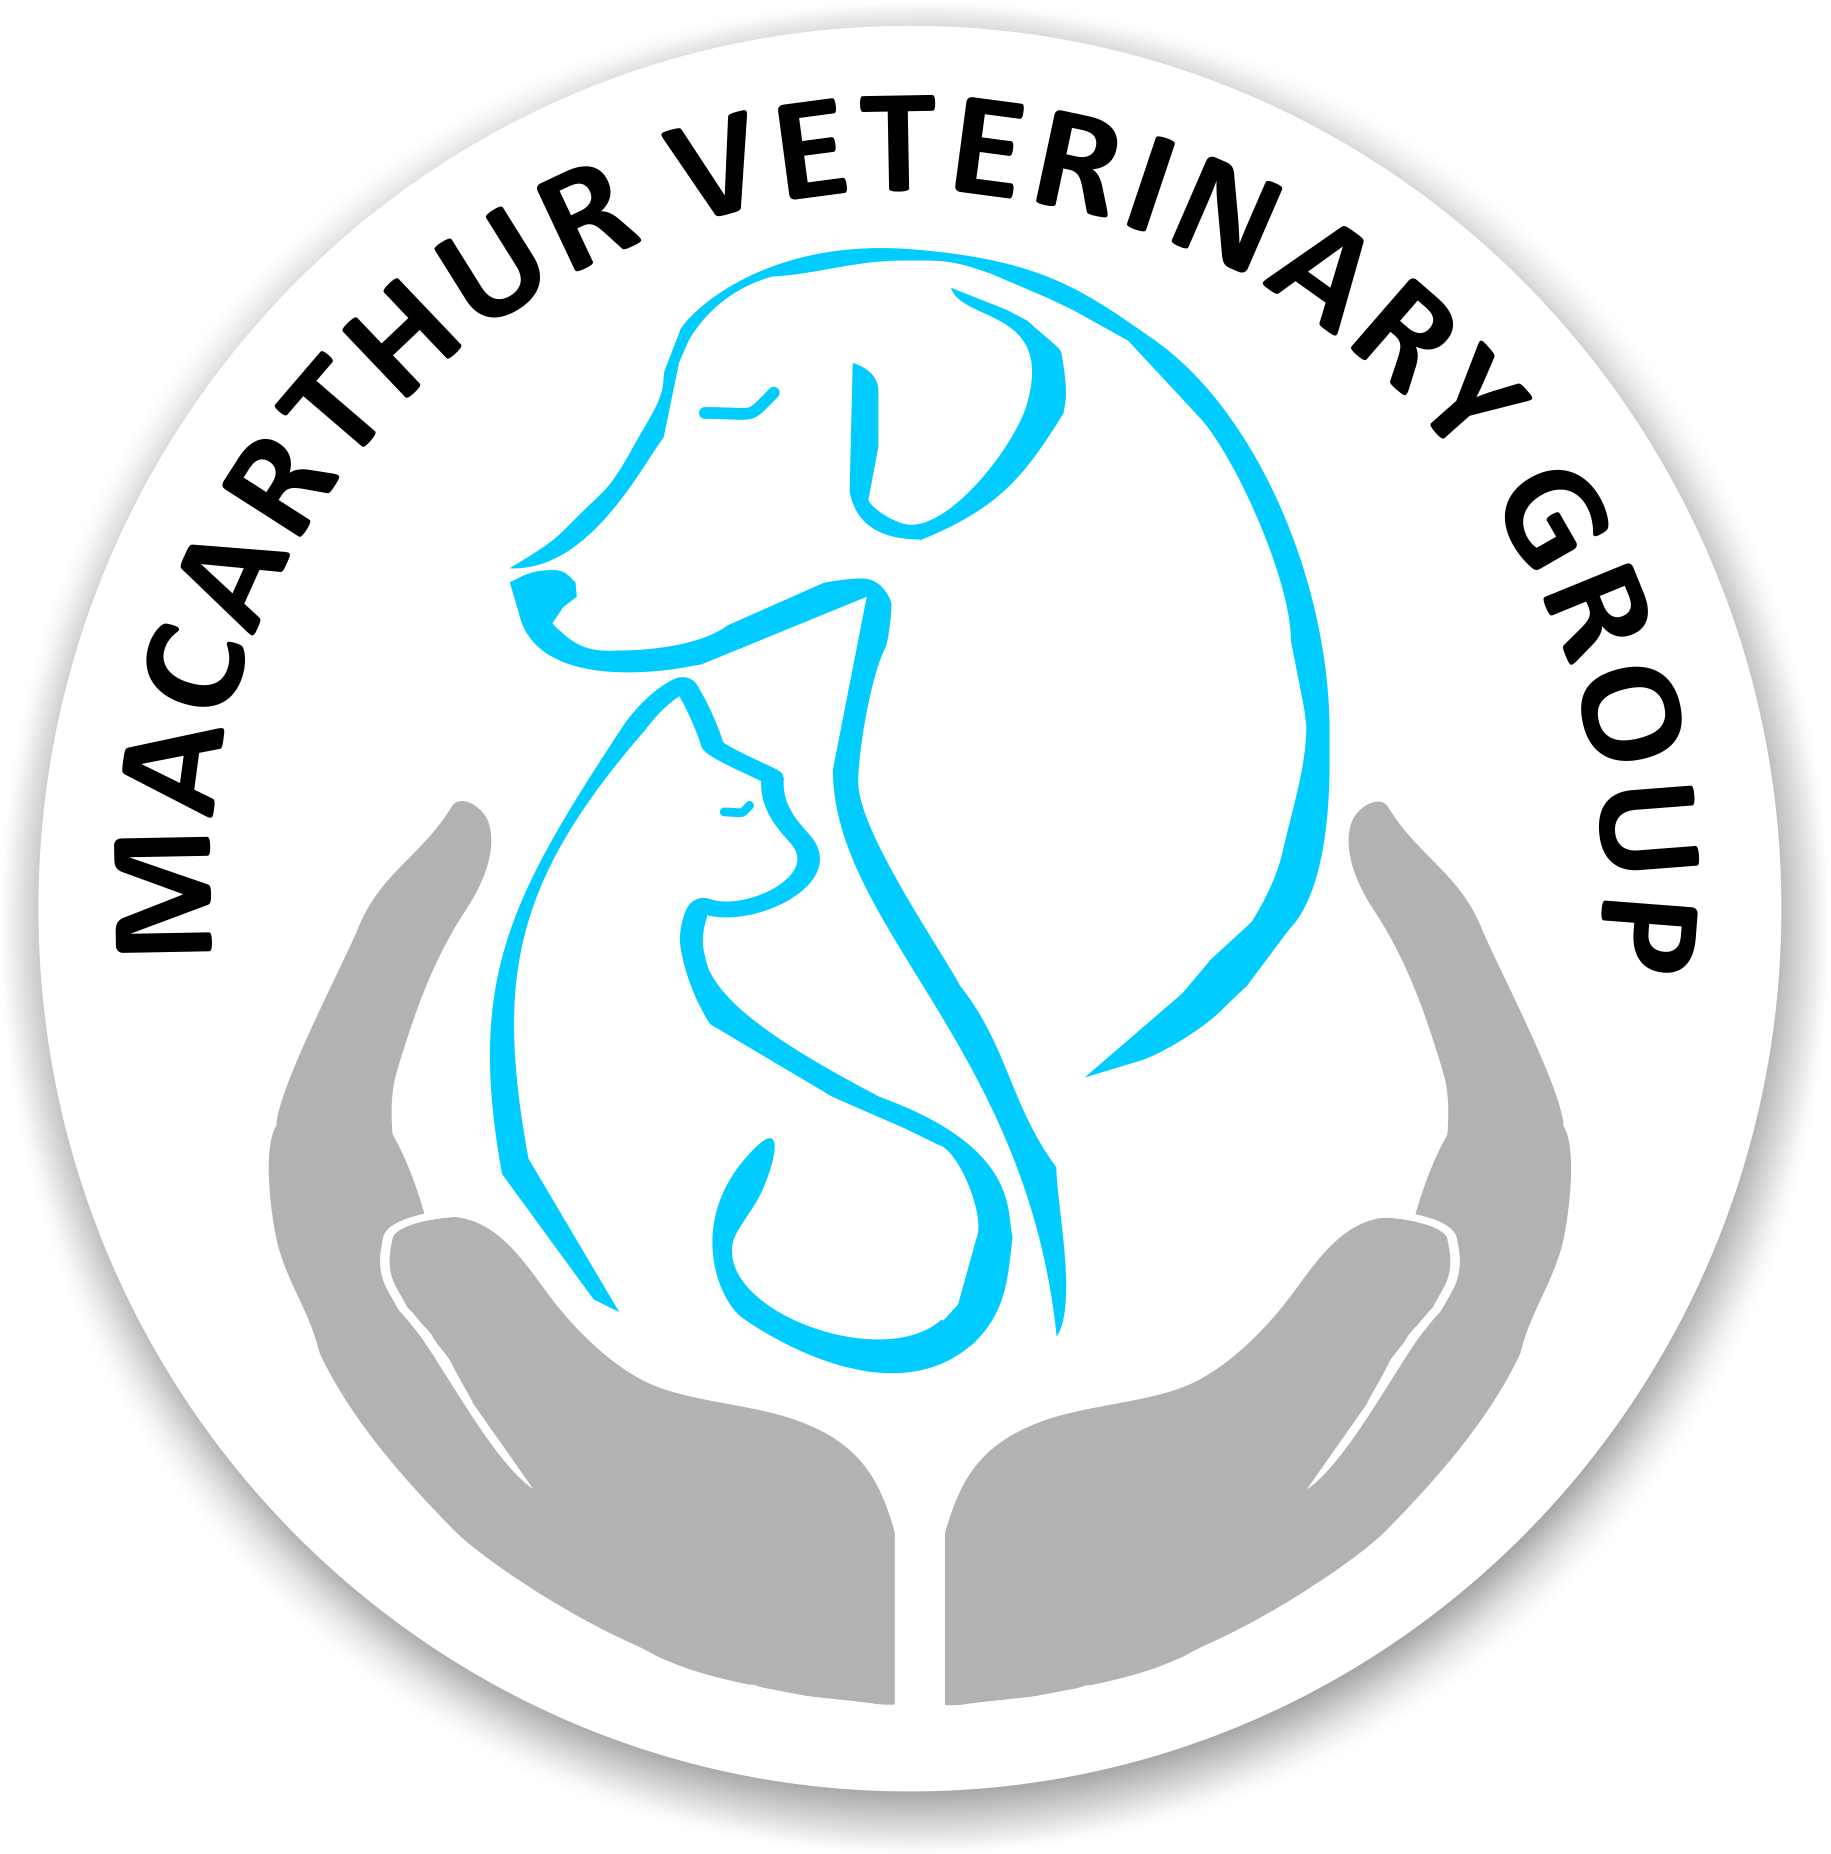 Macarthur Vet Group - Your Family Pet is in Safe H